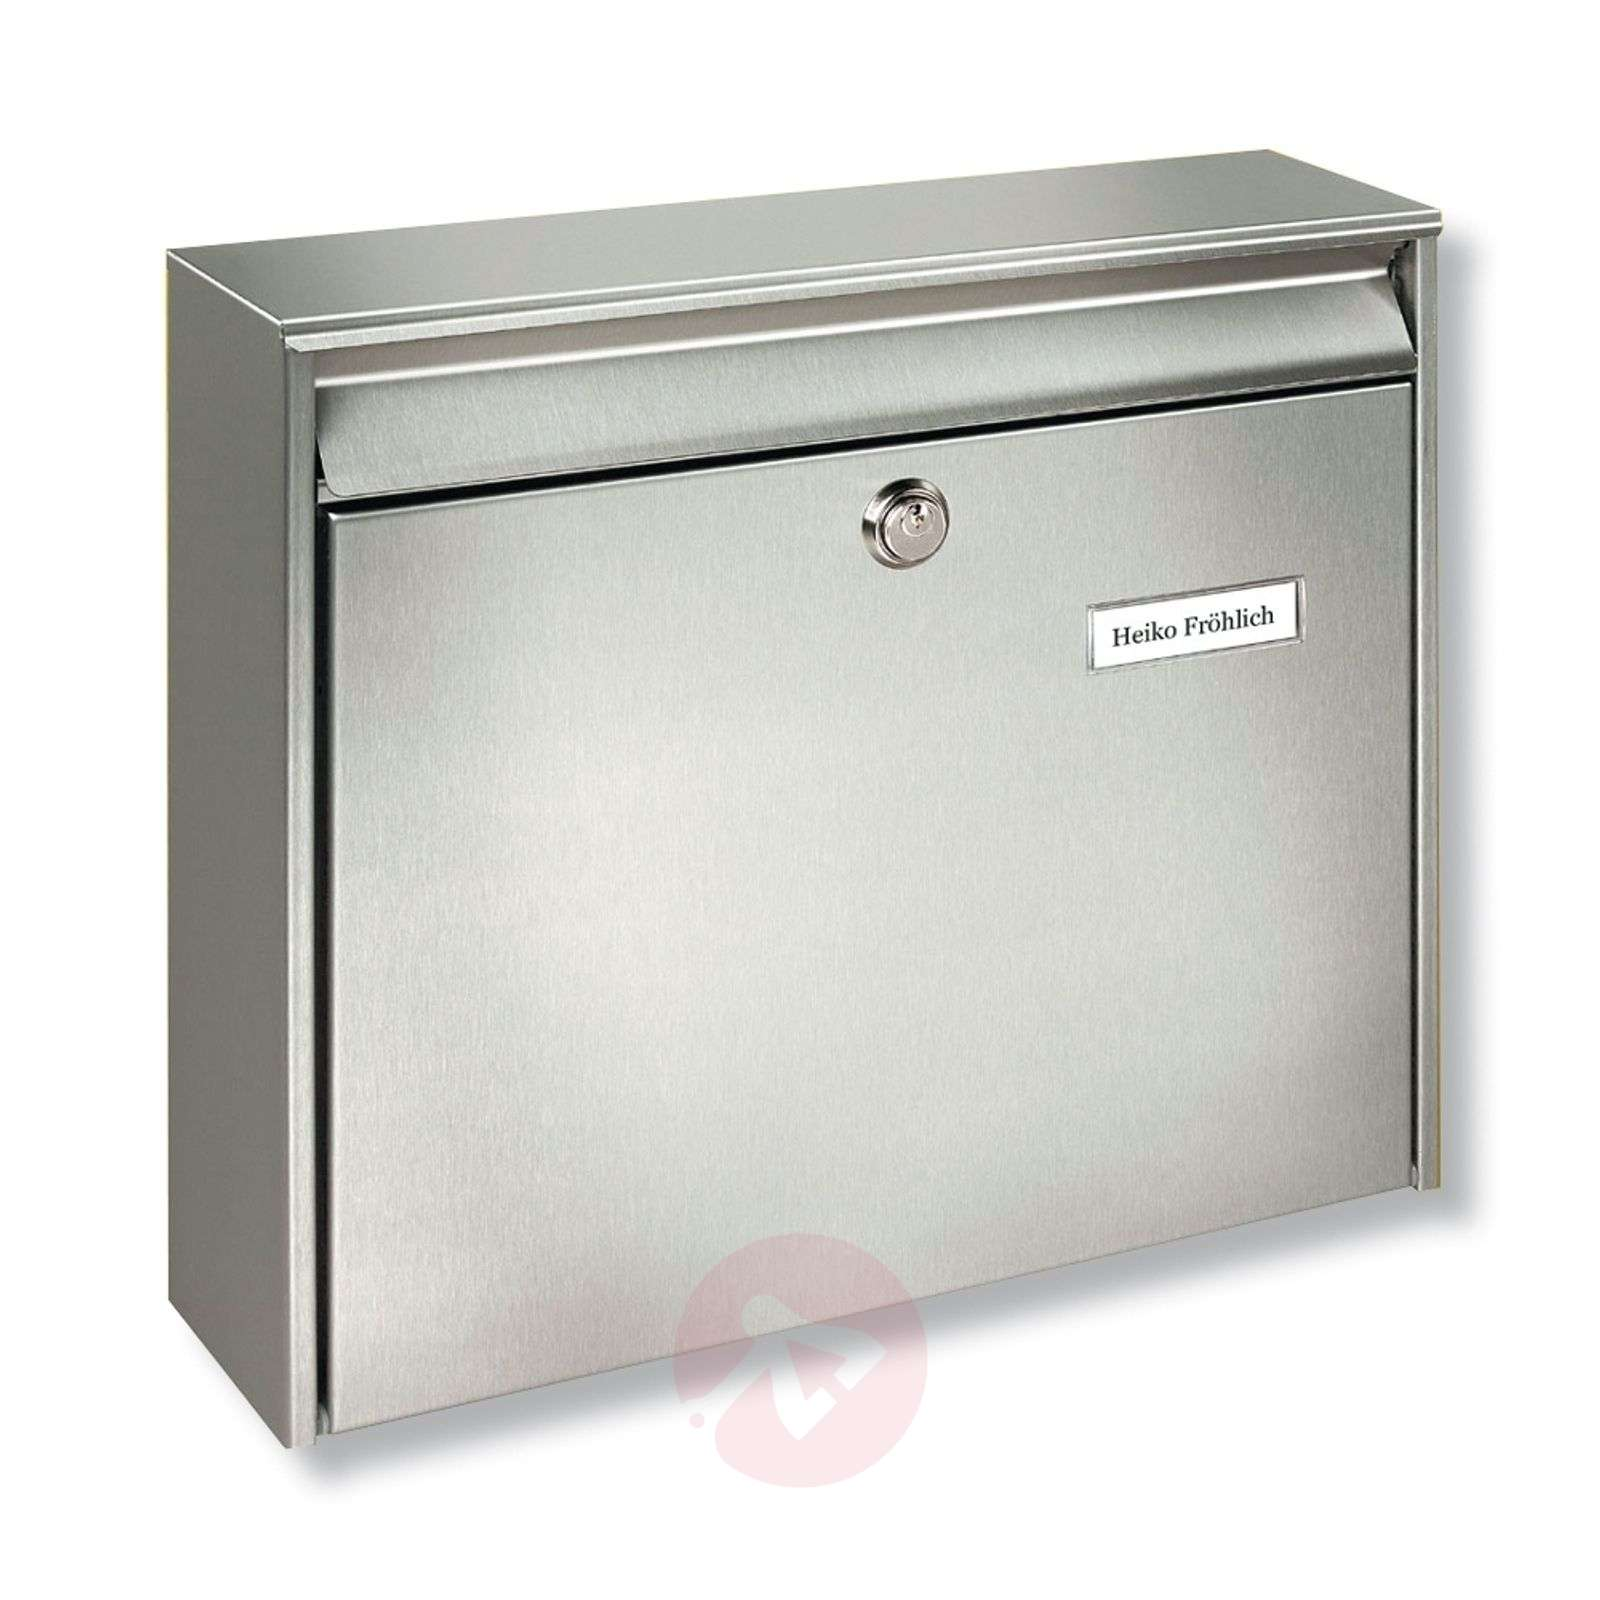 Borkum stainless steel letter box-1532041-01